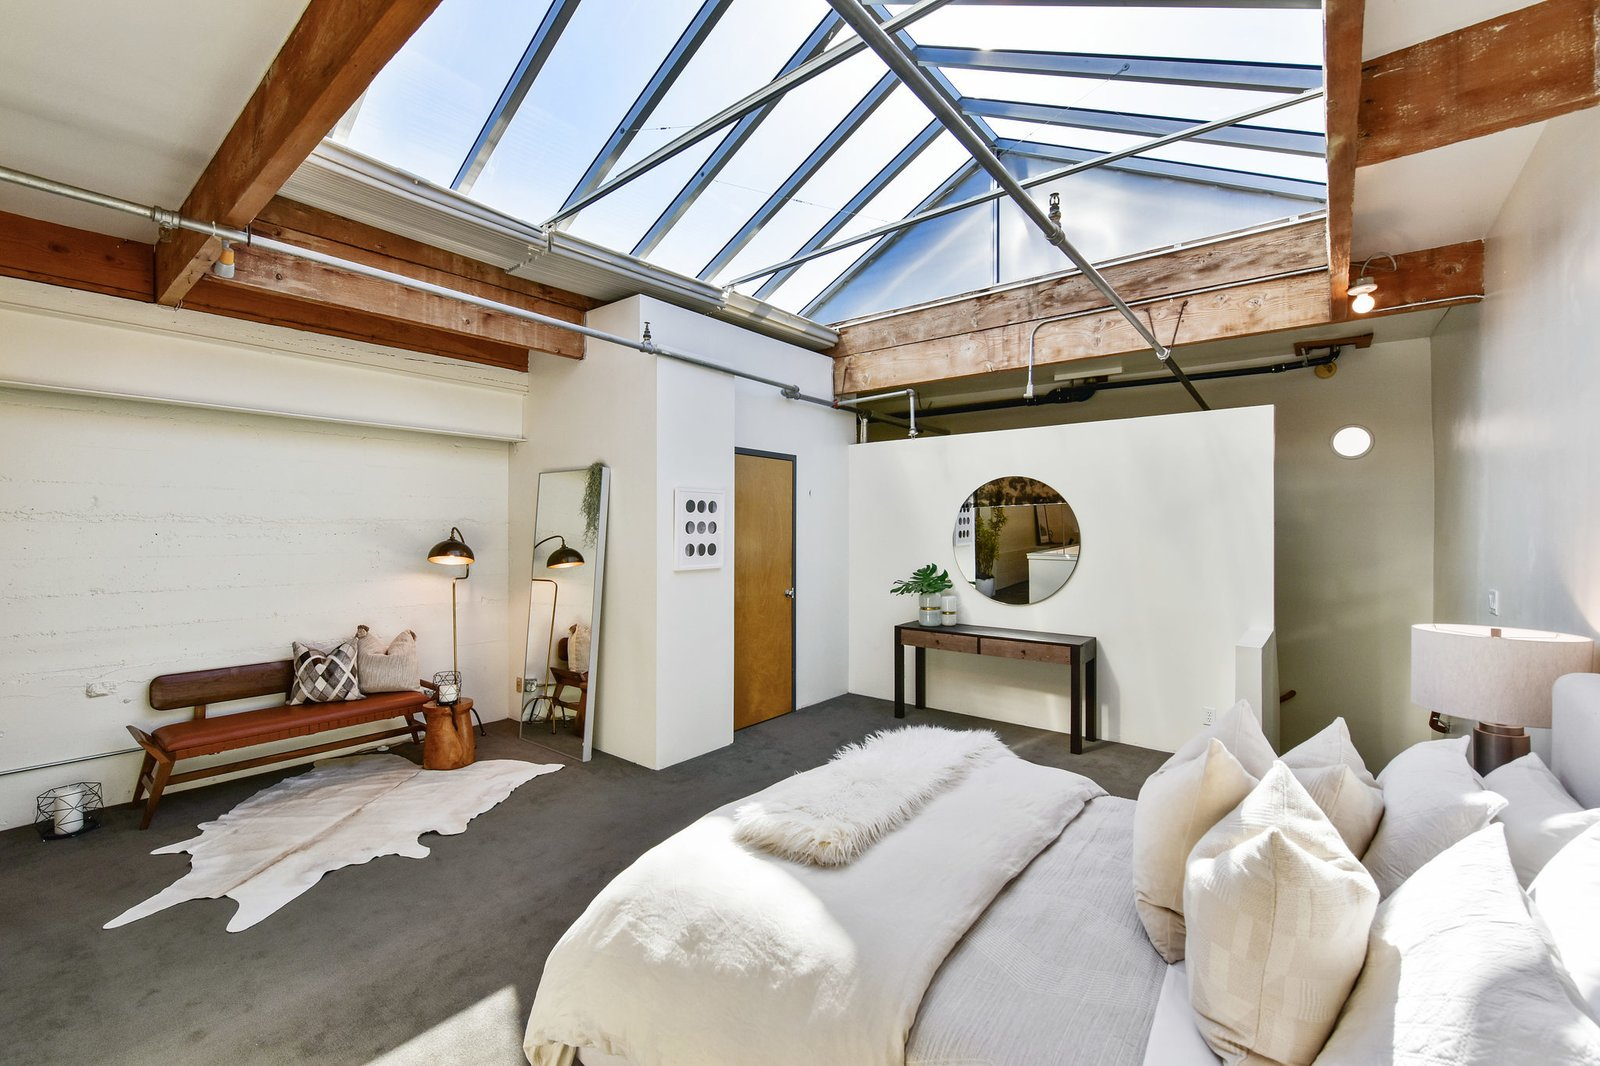 On the upper level, the master suite is illuminated by a massive skylight. A full bathroom is located in the corner.  Photo 6 of 9 in A Converted Warehouse Loft in the San Francisco Bay Area Seeks $950K